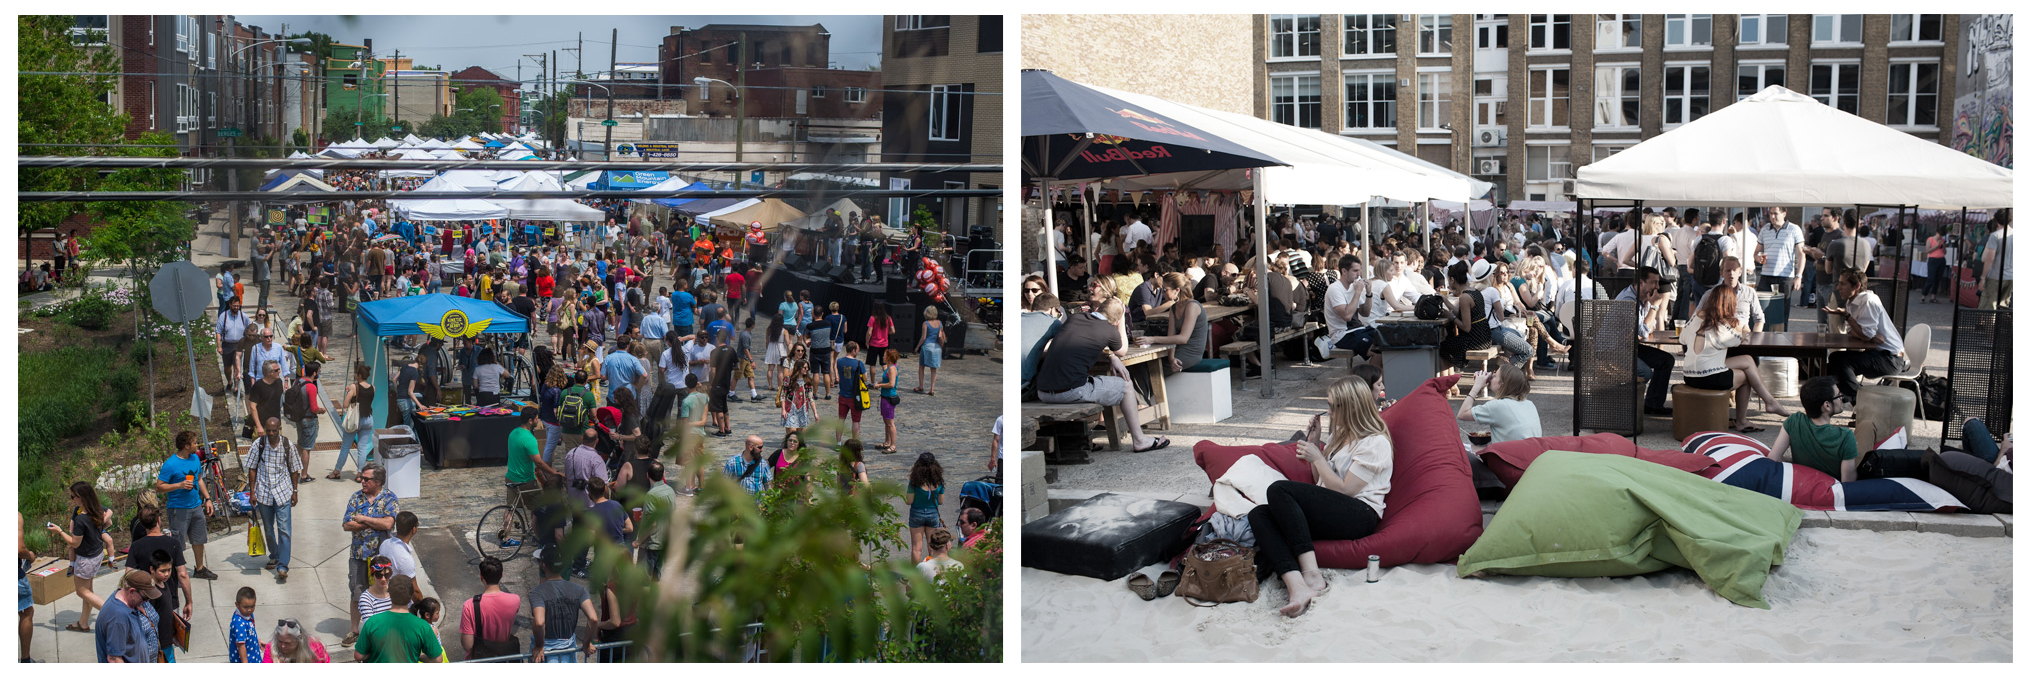 A street festival in Fishtown, and a street festival in Shoreditch.